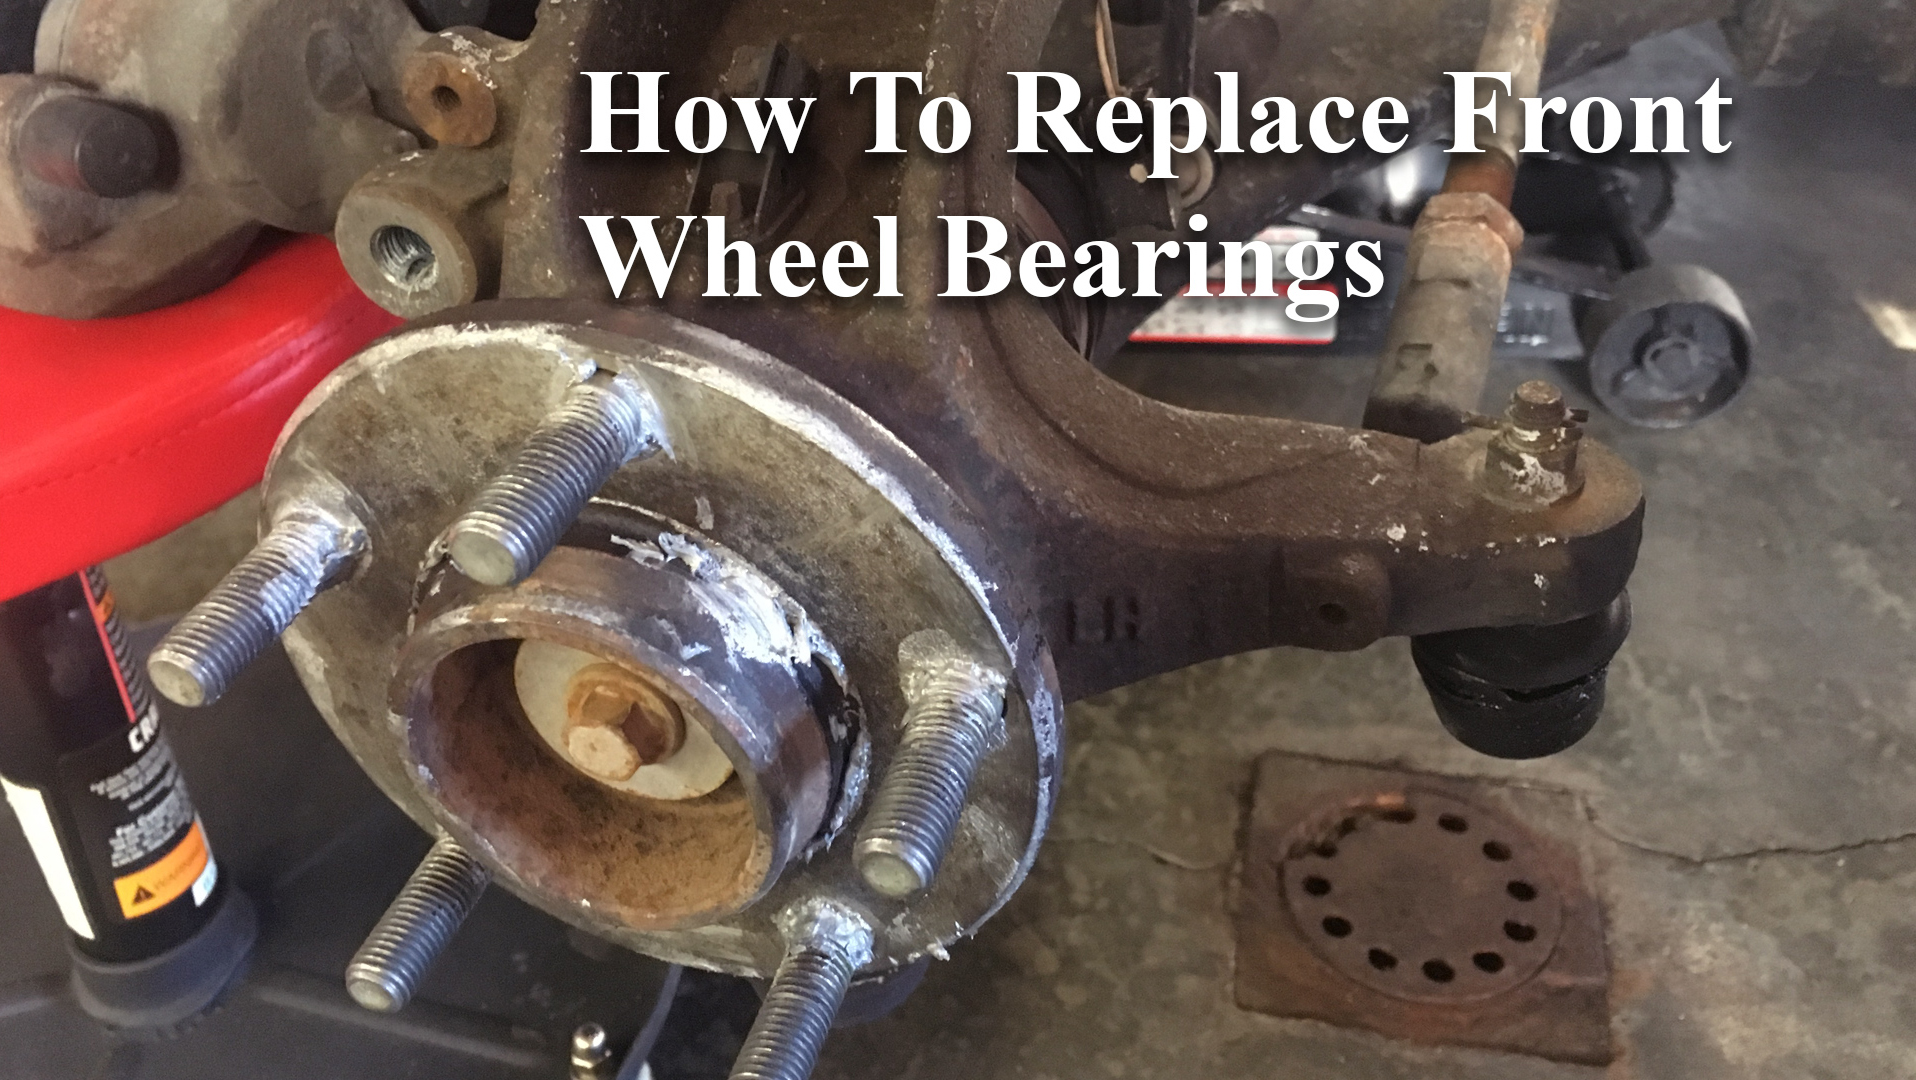 How To Change Wheel Bearing Hub Assembly – 2004 Mazda 3 2.3L | Brian M.  Fischer